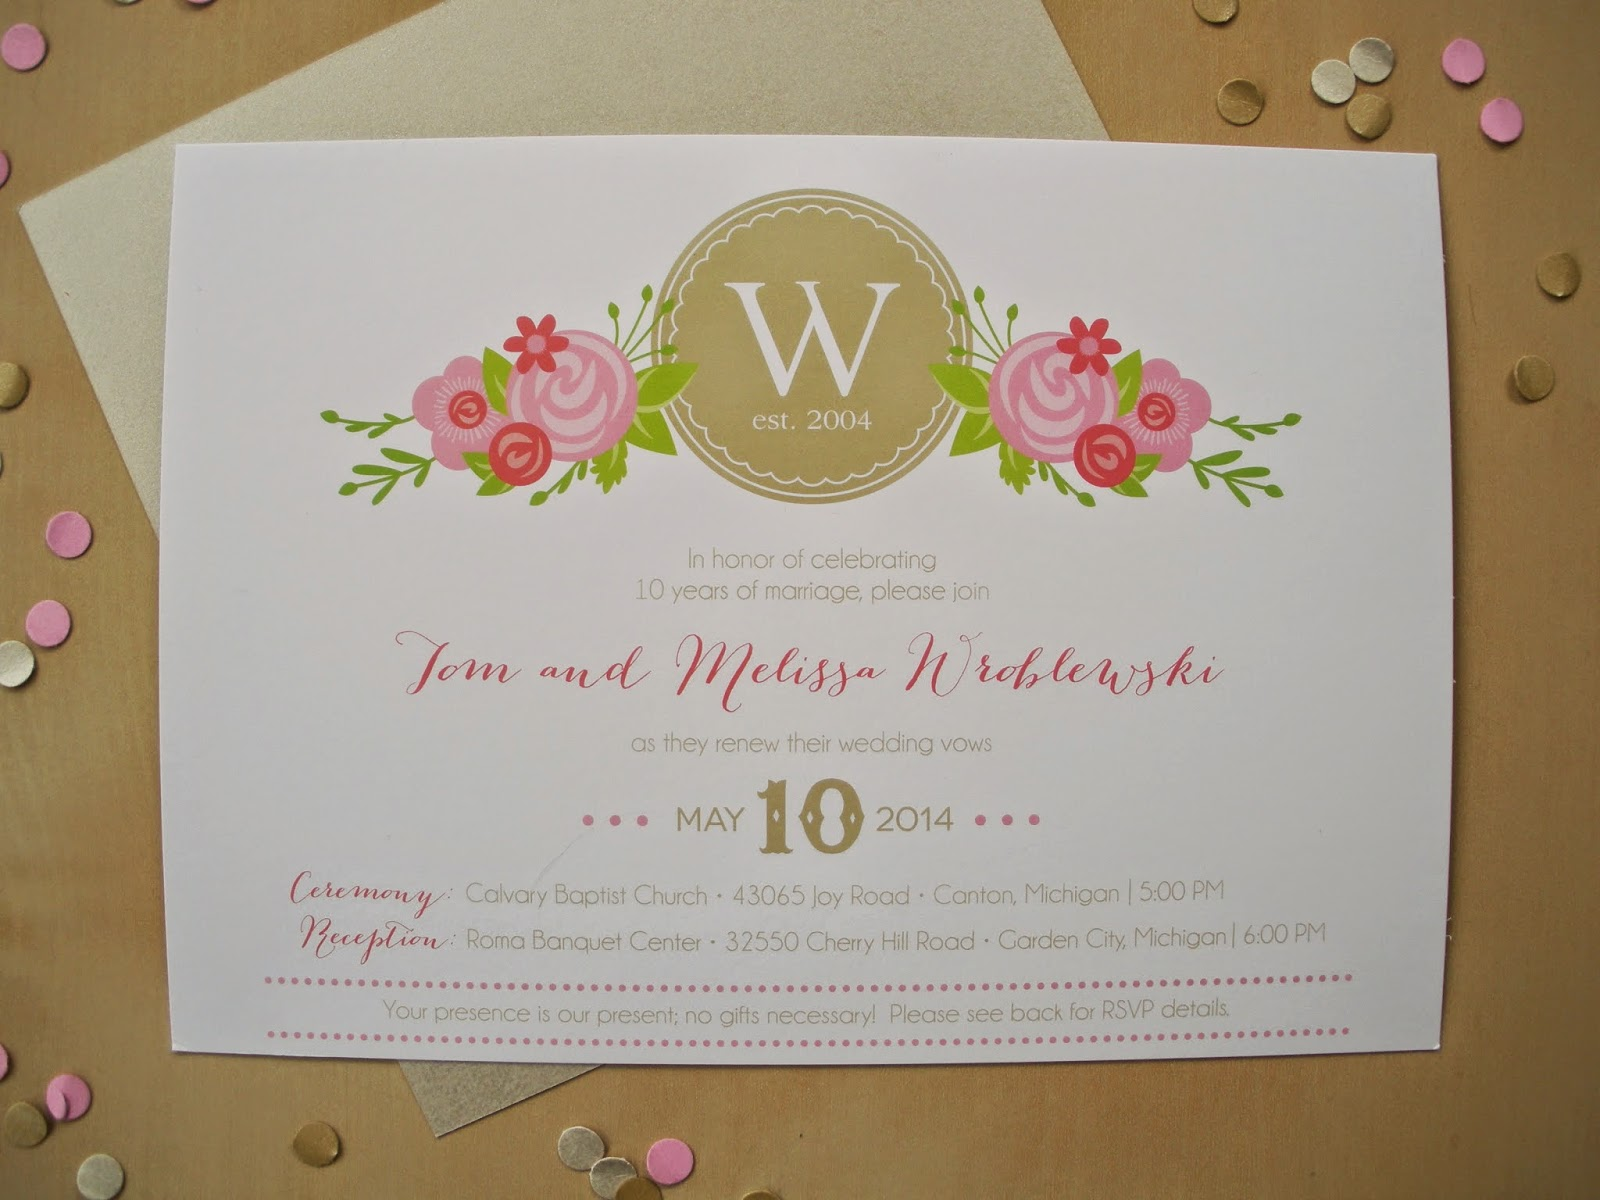 Invitation For Renewal Of Wedding Vows: Vivian Elle Invitations: Melissa And Tommy's Vow Renewal